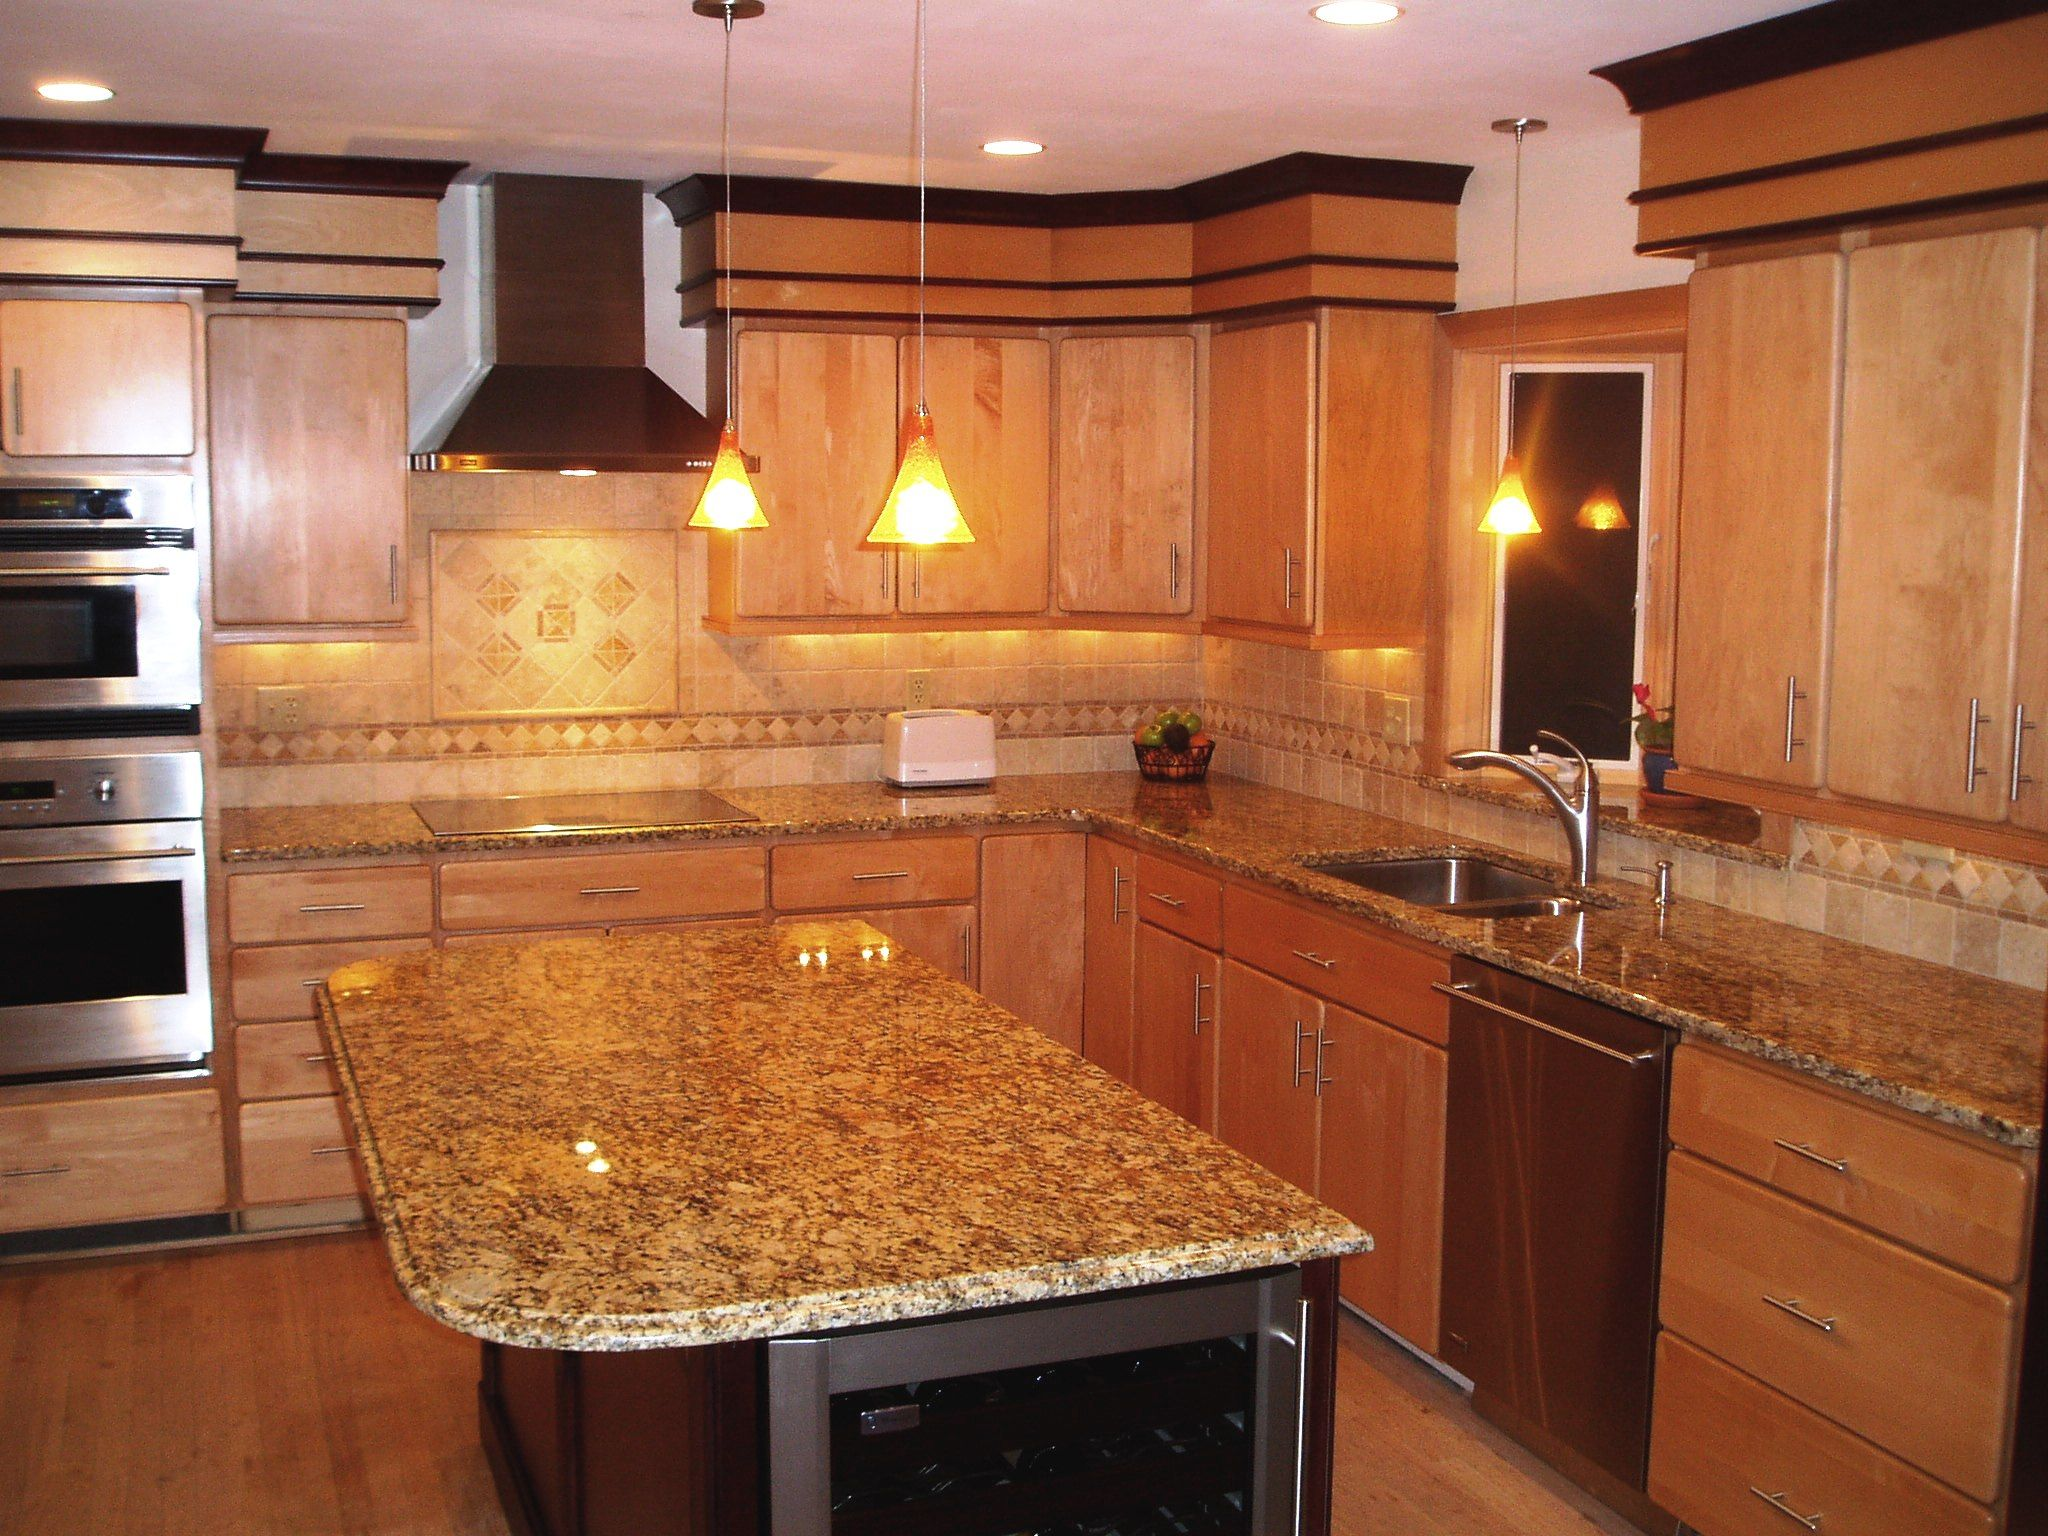 custom granite tops kitchen granite countertops best images about Custom Granite Tops on Pinterest Granite countertops colors Kitchen ideas and Granite counters